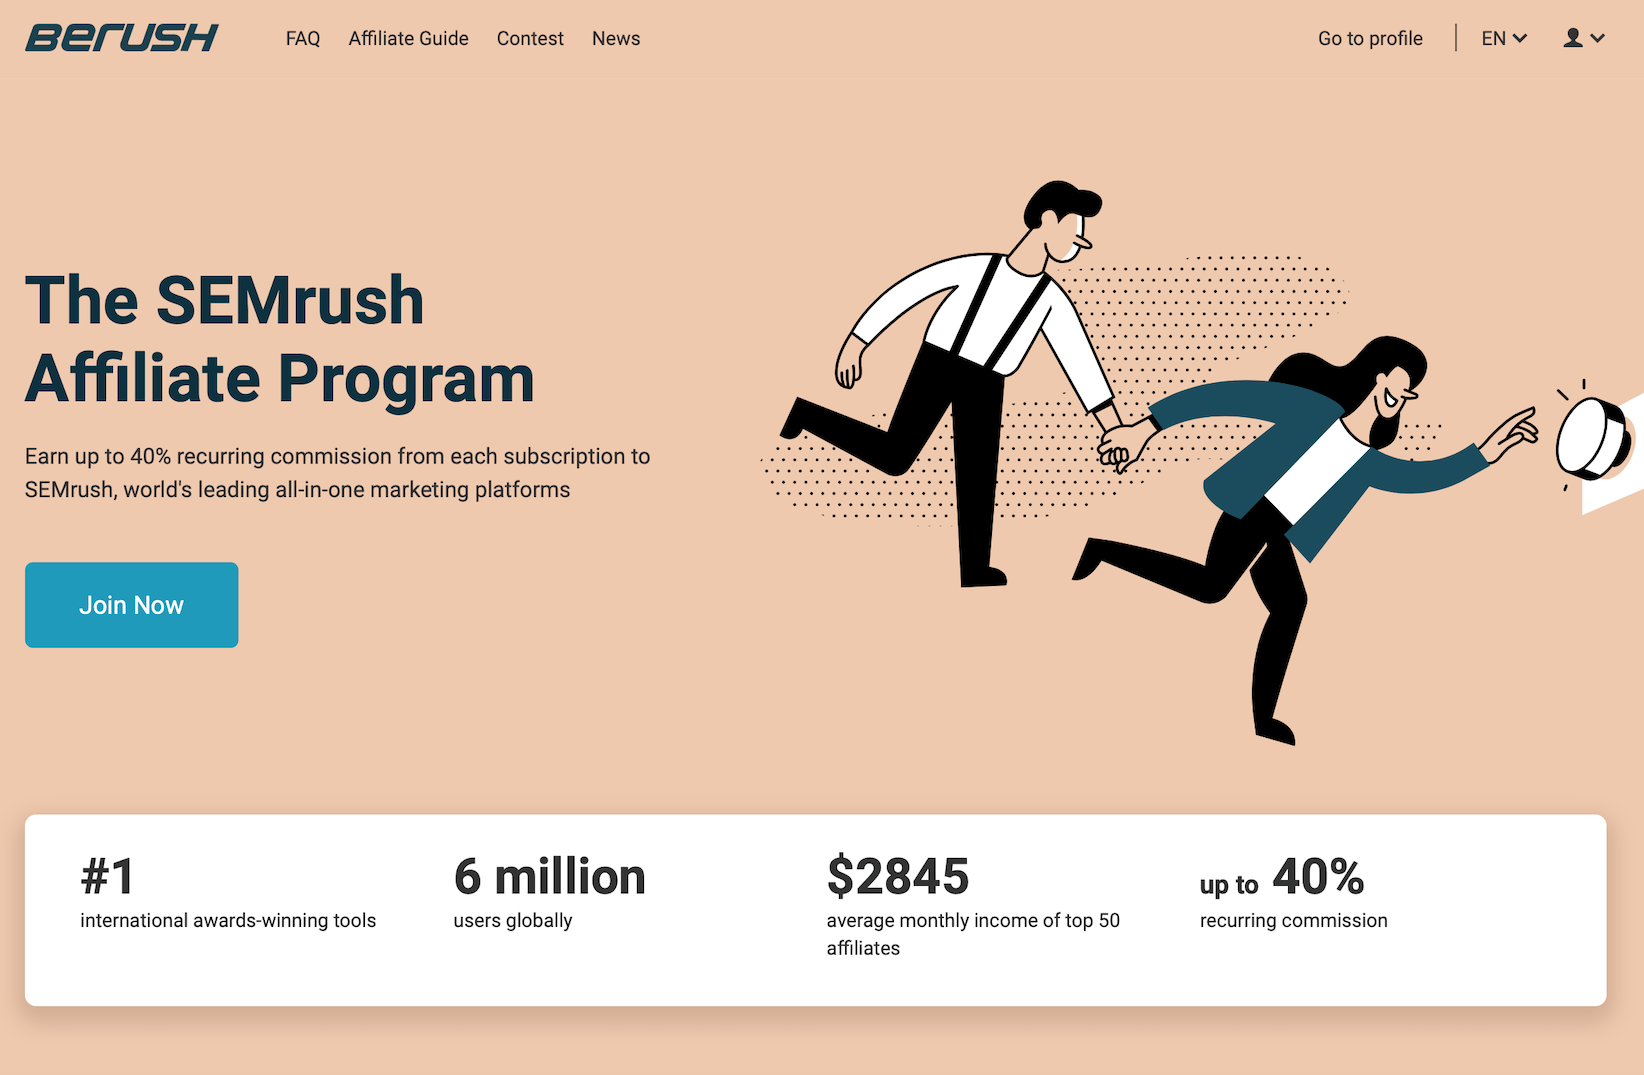 Breush-the-semrush-affiliate-program-review